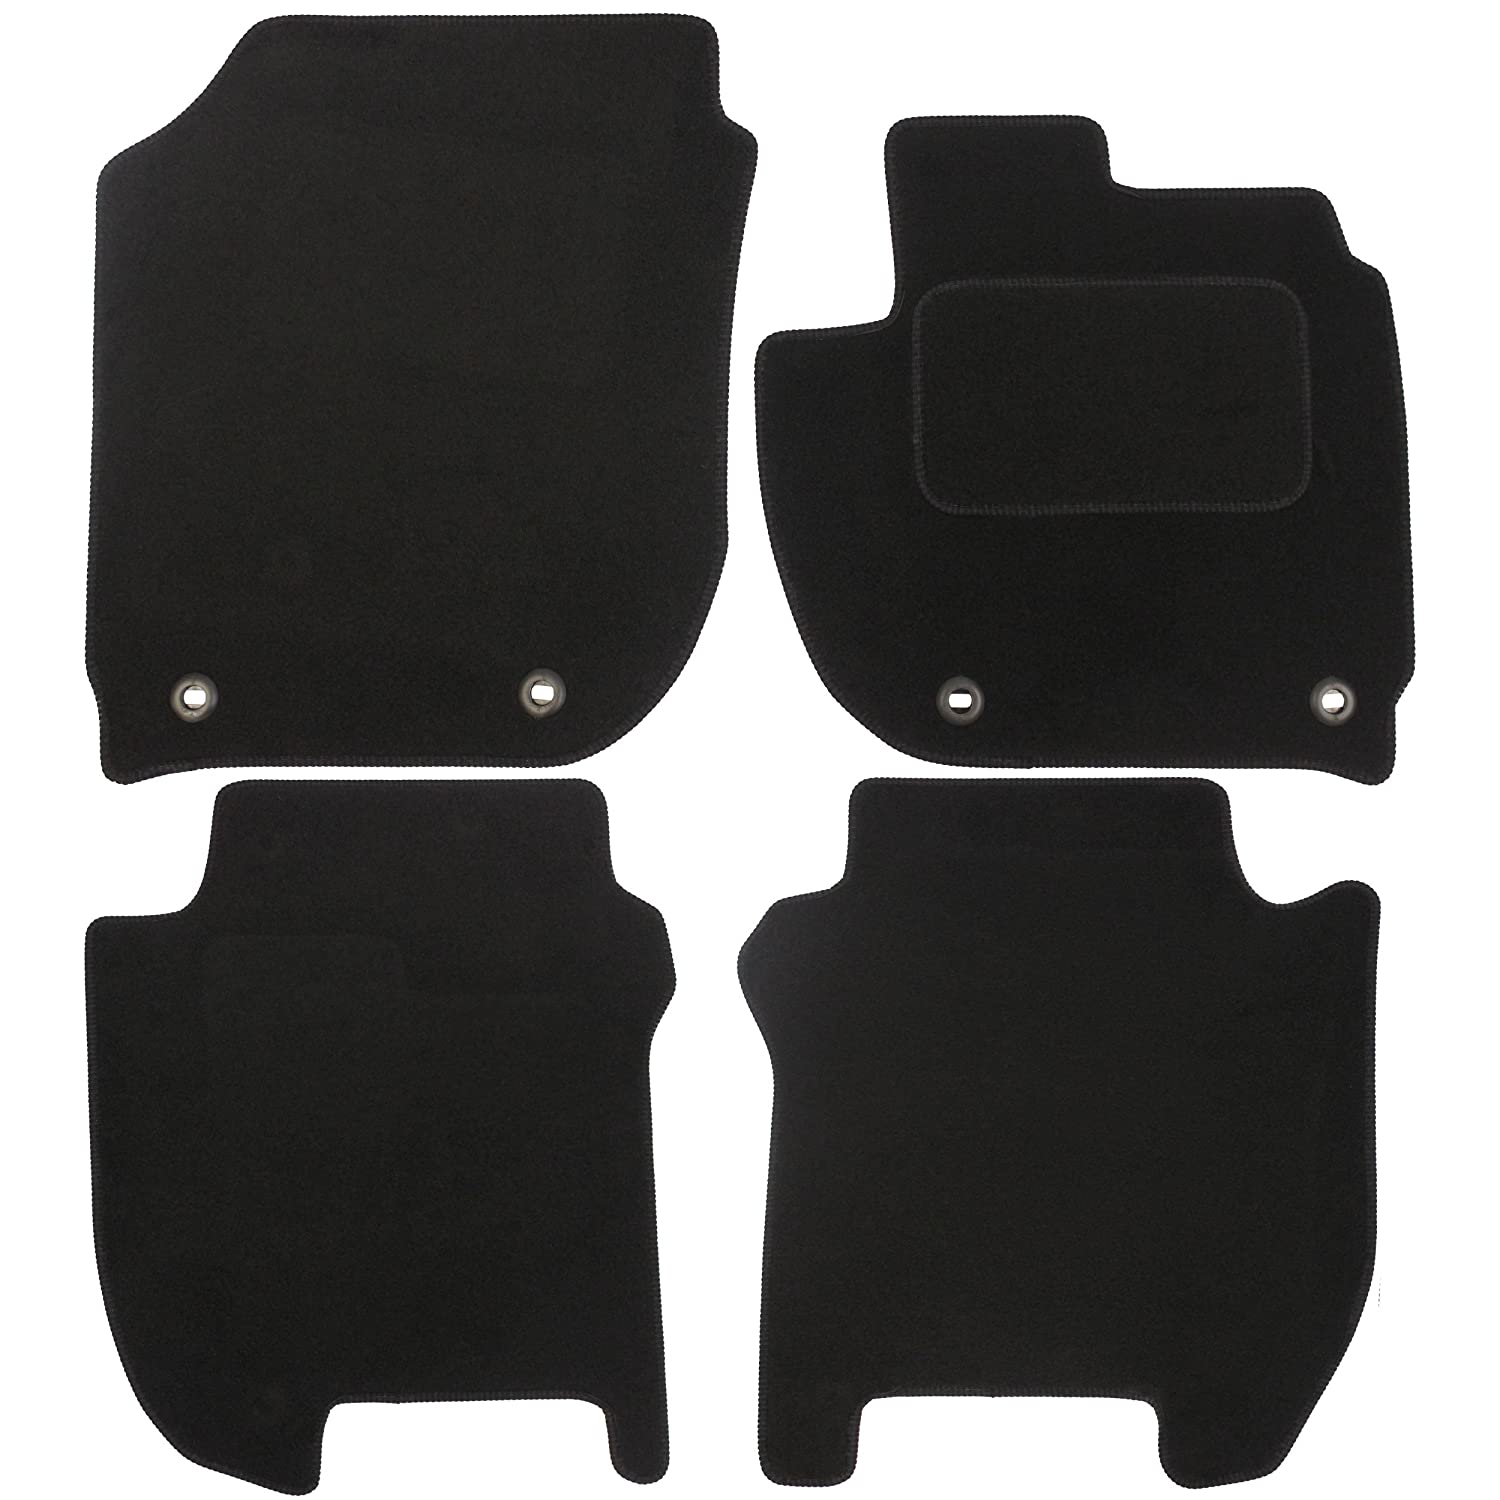 JVL Fully Tailored Car Mats with 4 Clips - Black, 4 Pieces 3636